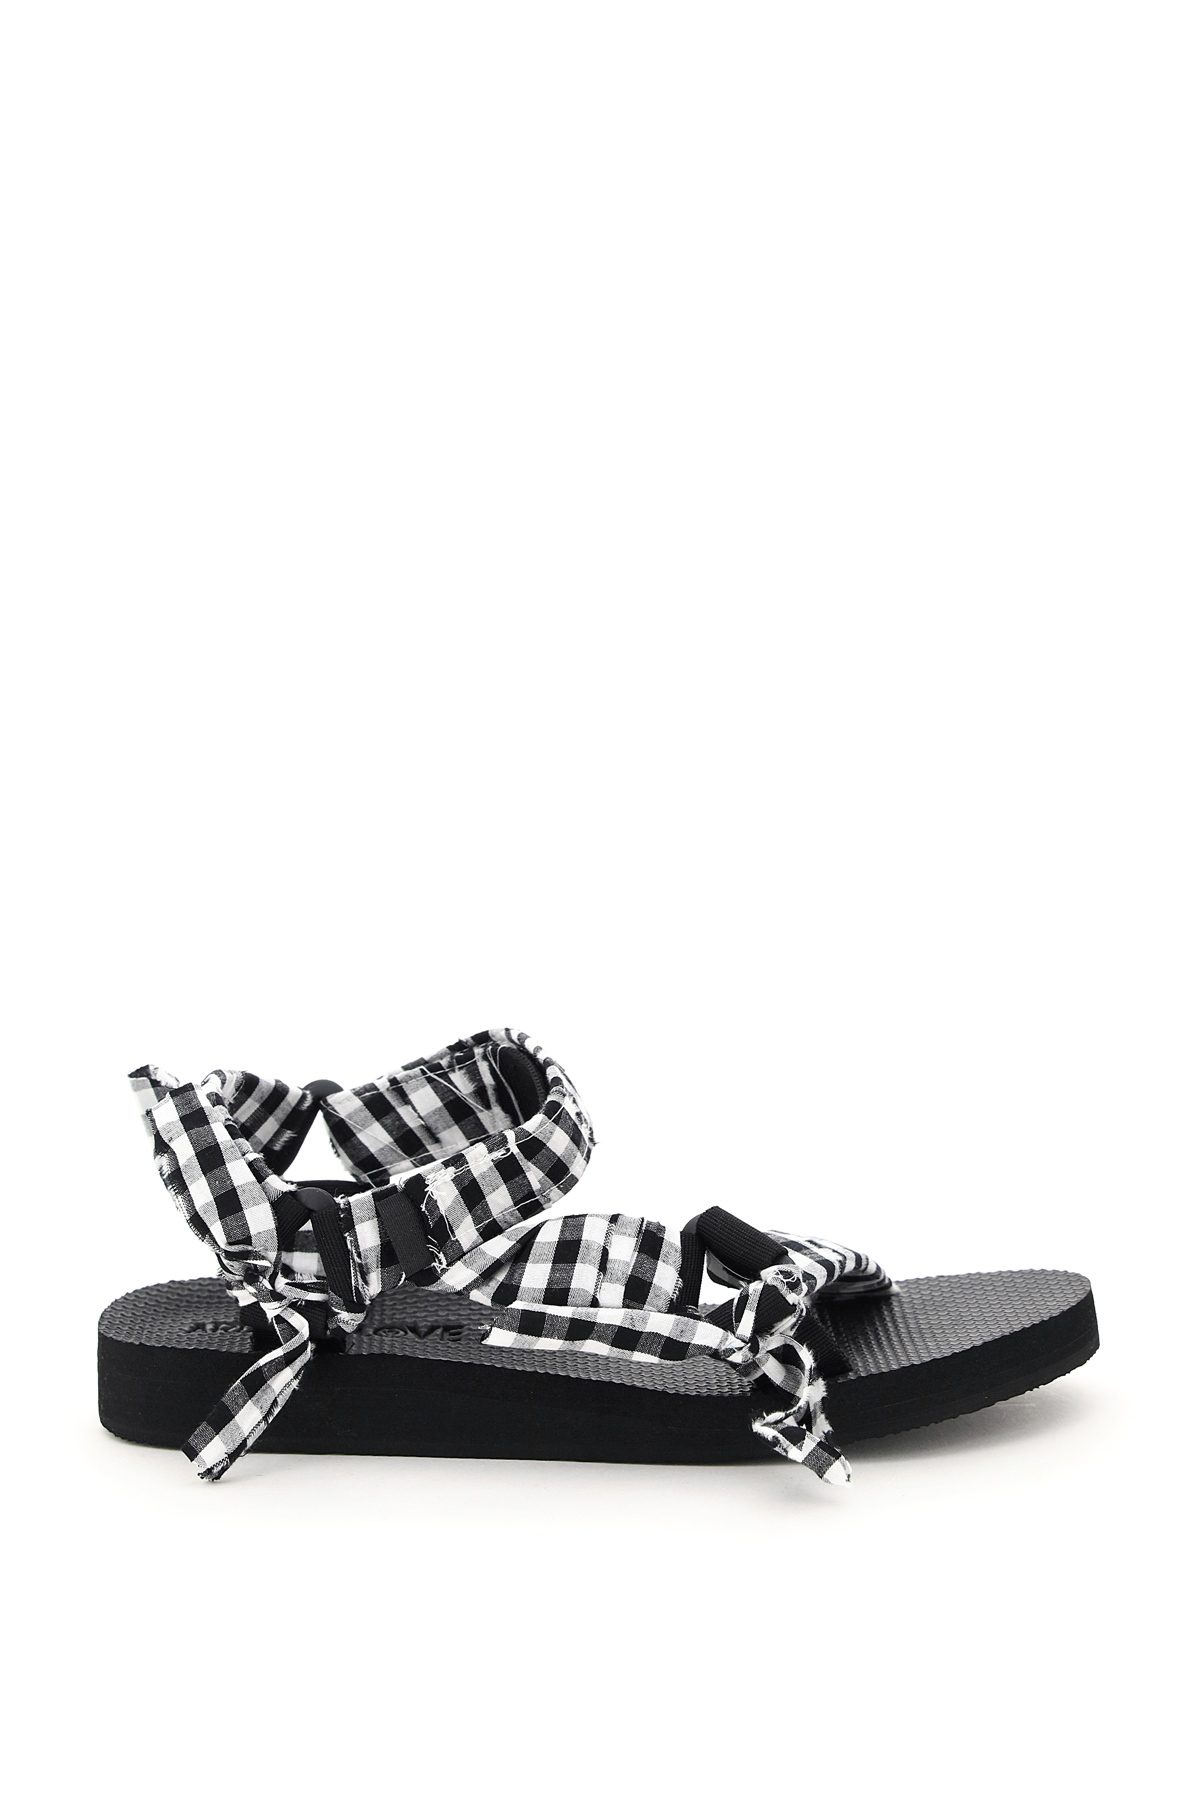 ARIZONA LOVE TREKKY GINGHAM SANDALS 38 White, Black Cotton